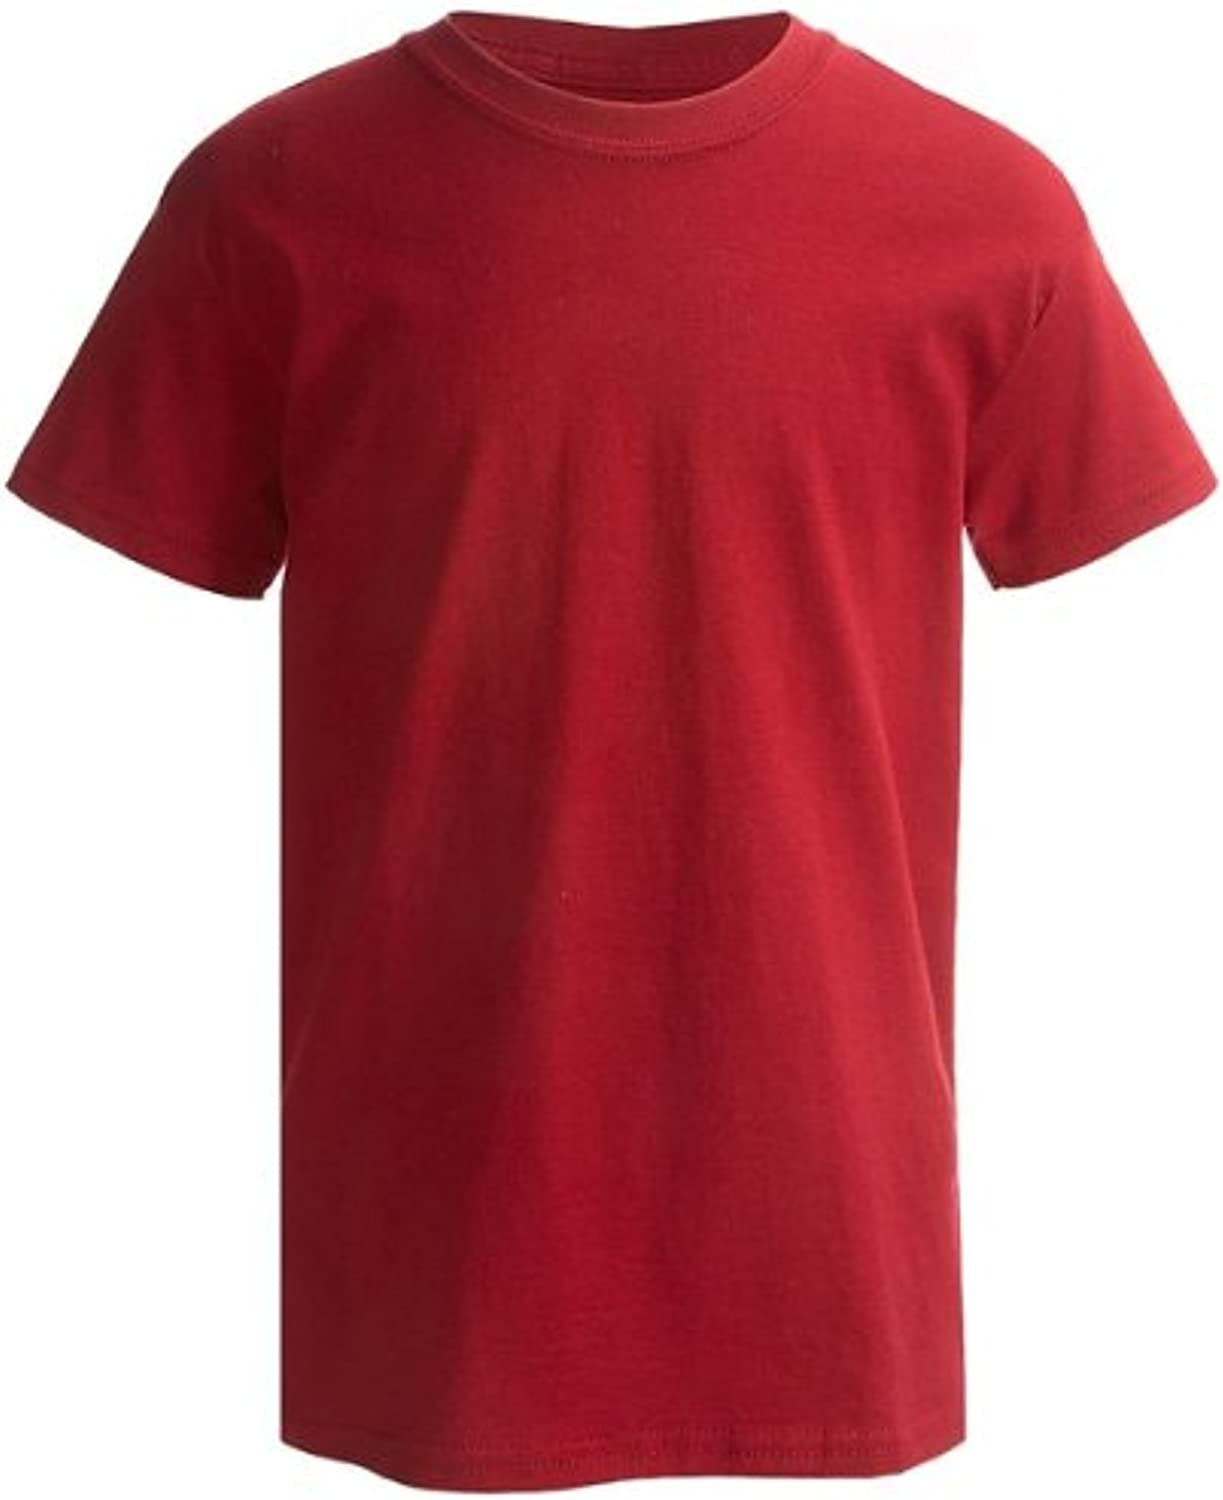 2-Pack Hanes ComfortSoft Youth Short Sleeve Tagless T-Shirt, ChiliRed, S 6/7